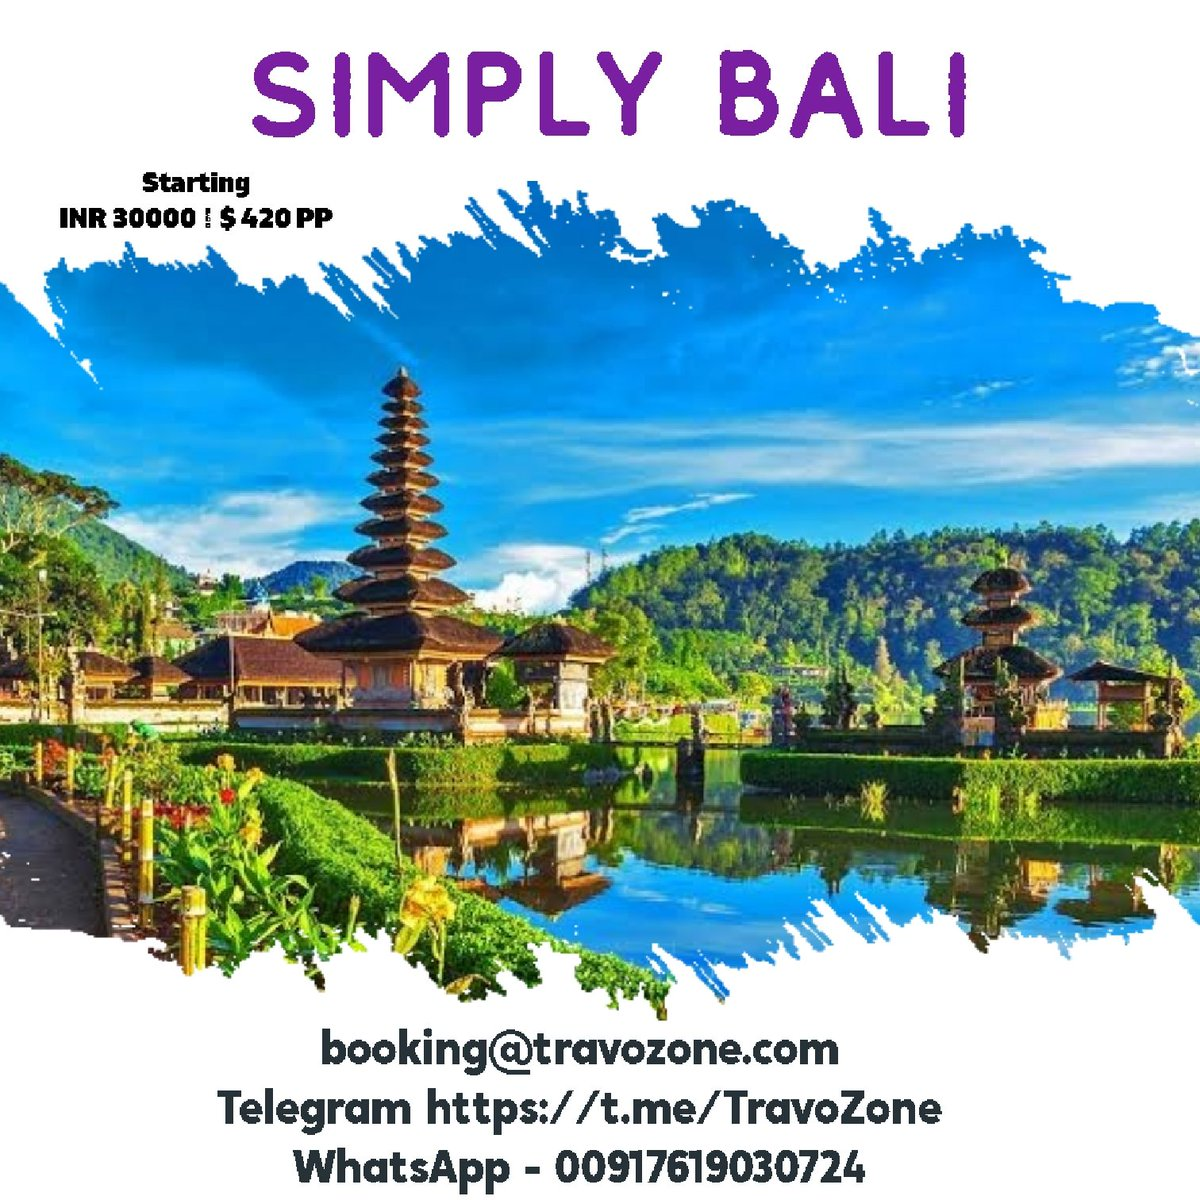 #bali #indonesia Holiday from #TravoZone to book mail us at booking@travozone.com  #travel #traveling #TagsForLikes #TFLers #vacation #visiting #instatravel #instago #instagood #trip #holiday #photooftheday #fun #travelling #tourism #tourist #instapassport #instatraveling